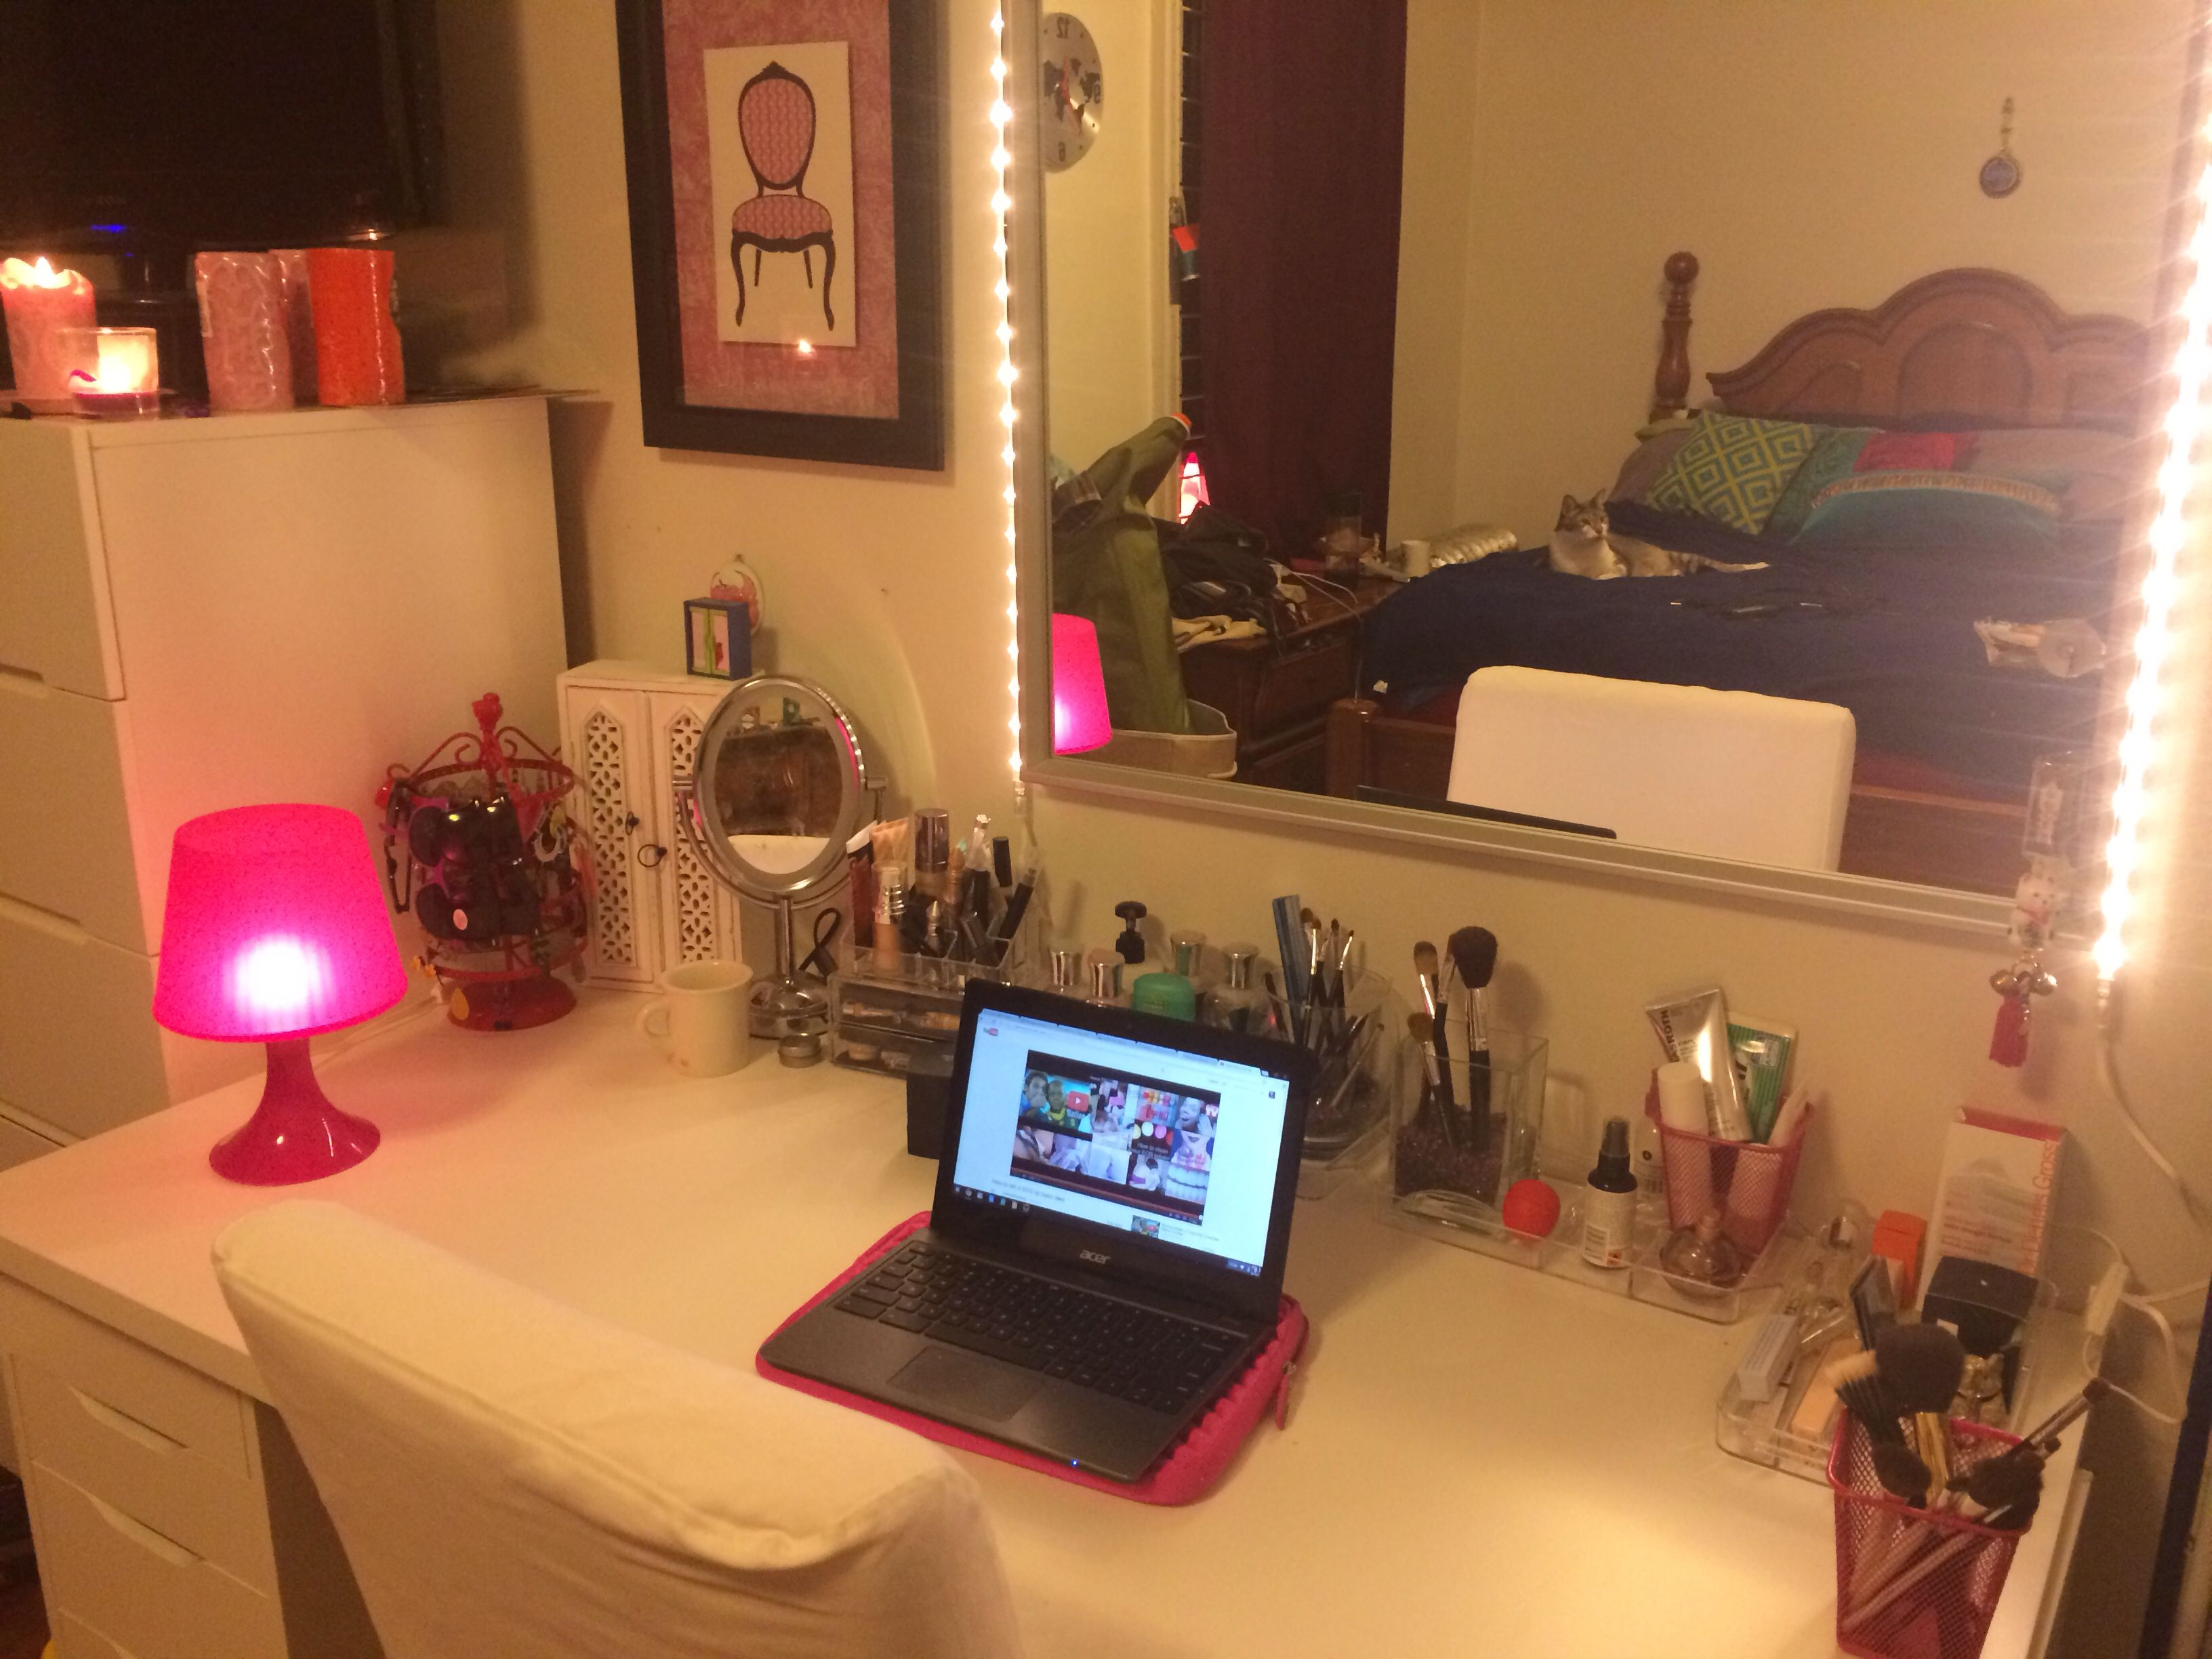 Vanity Lights Strip : DIY vanity mirror using magnets and led light strips from ikea Makup organization ideas ...